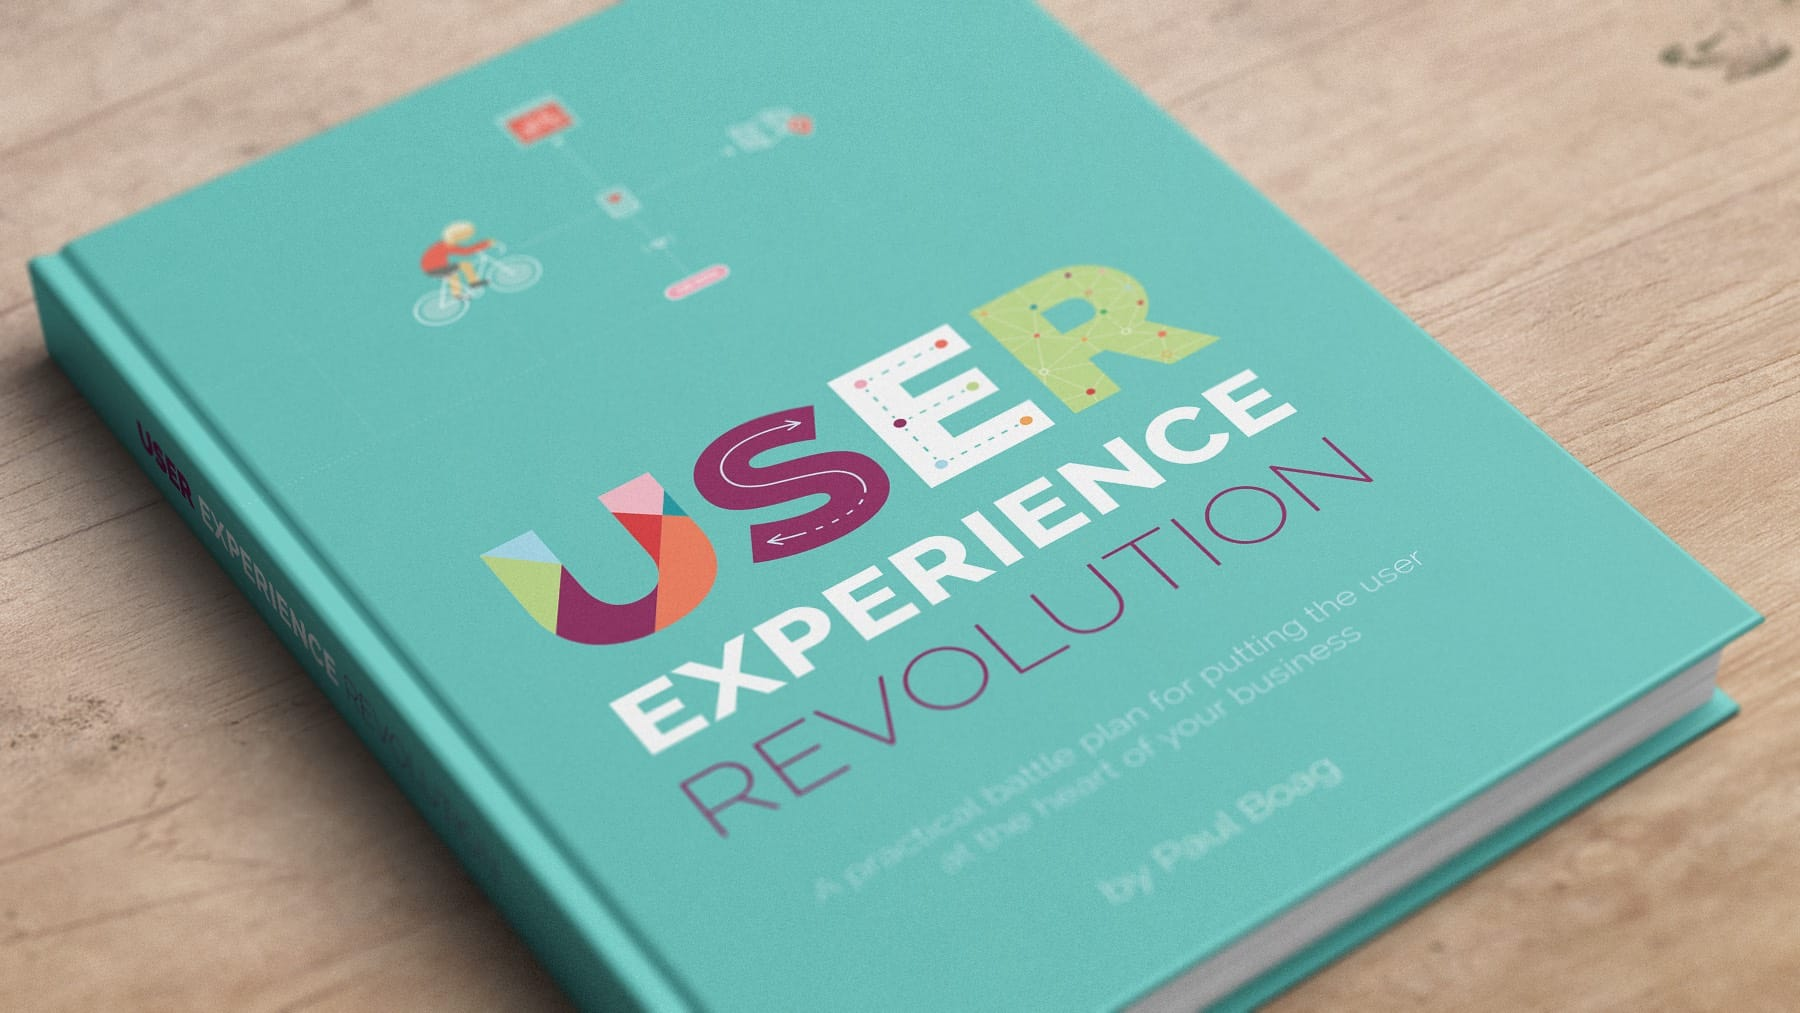 Signup to be the first to know when my book on building a user experience culture is released.